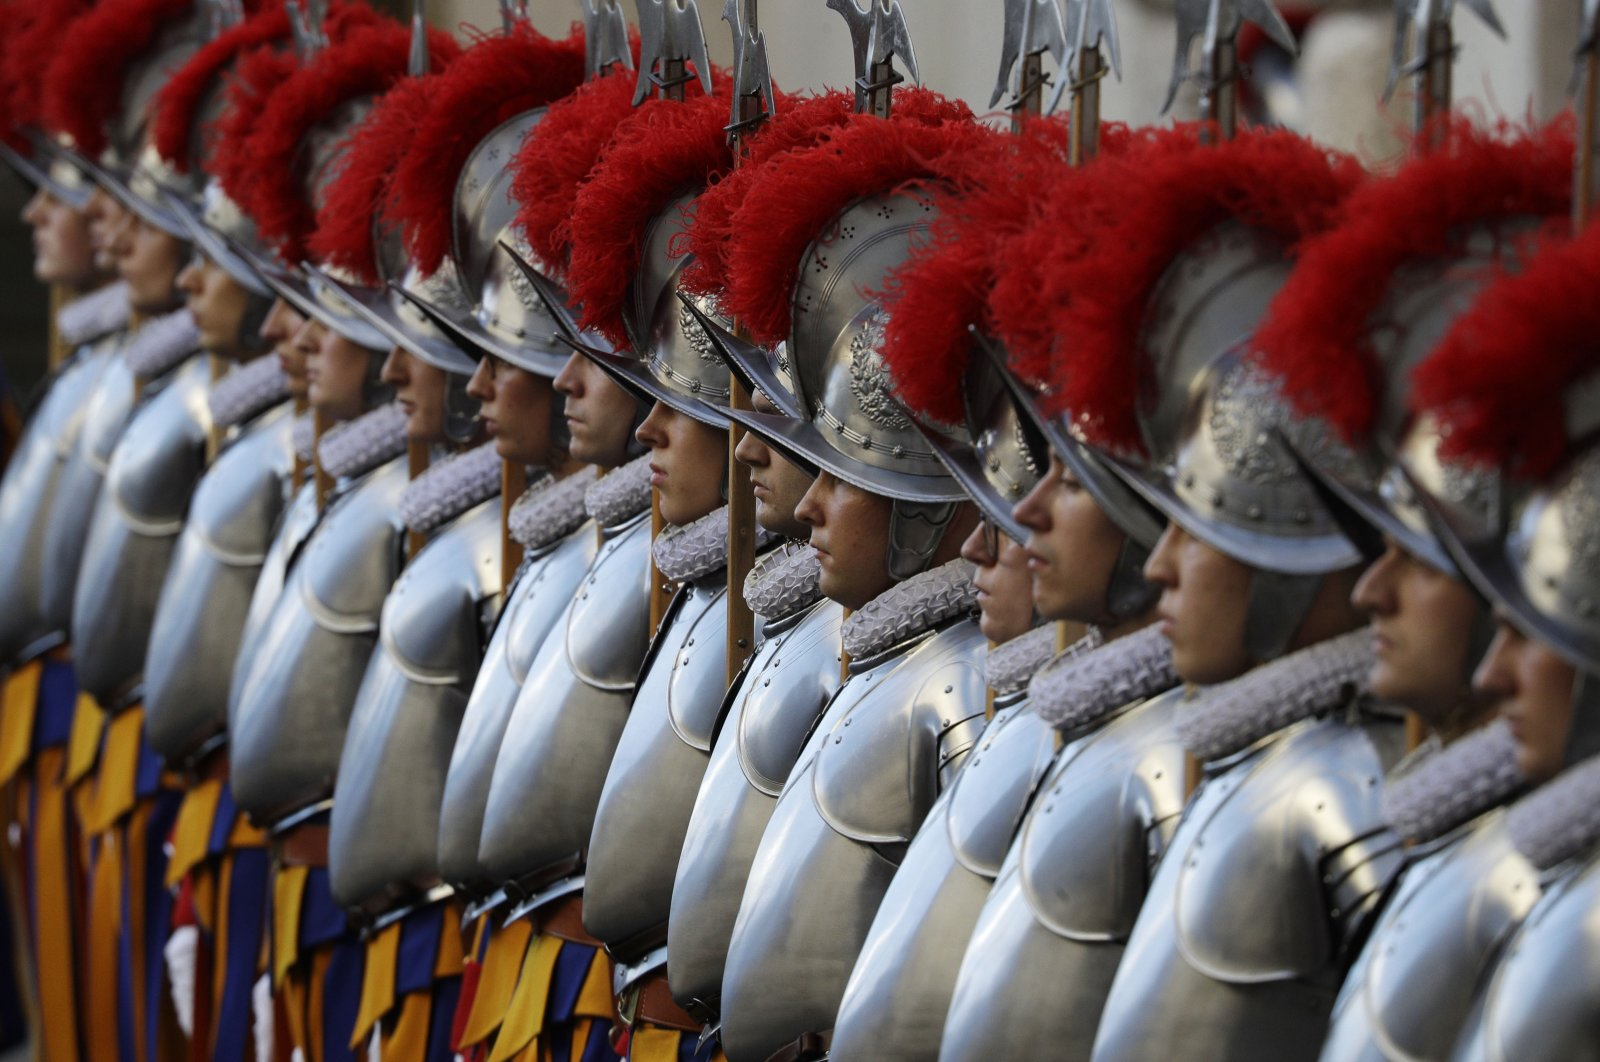 Vatican Swiss Guards stand attention at the St. Damaso courtyard on the occasion of their swearing-in ceremony, at the Vatican, Oct. 4, 2020. (AP Photo)